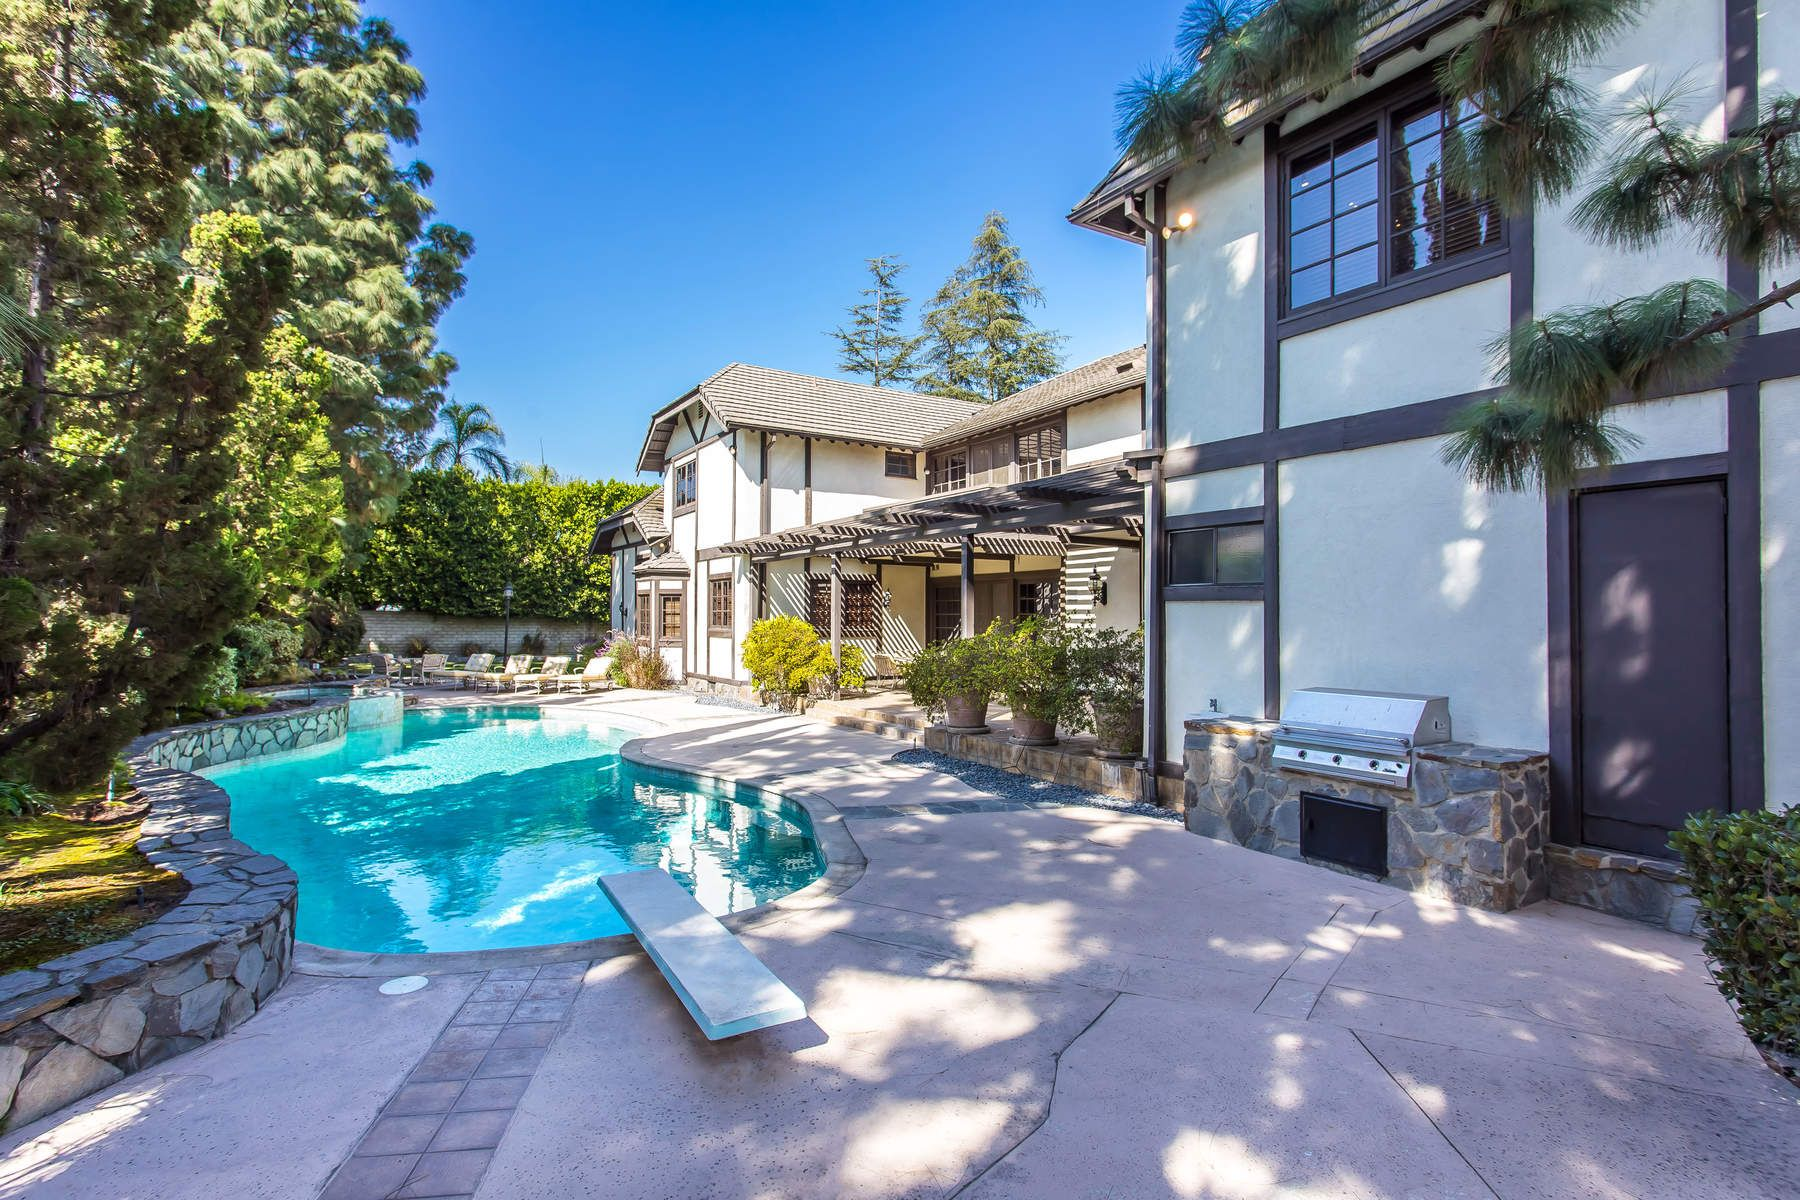 House for Sale at Traditional Large Home in Mount Olympus Los Angeles, California 90046 United States